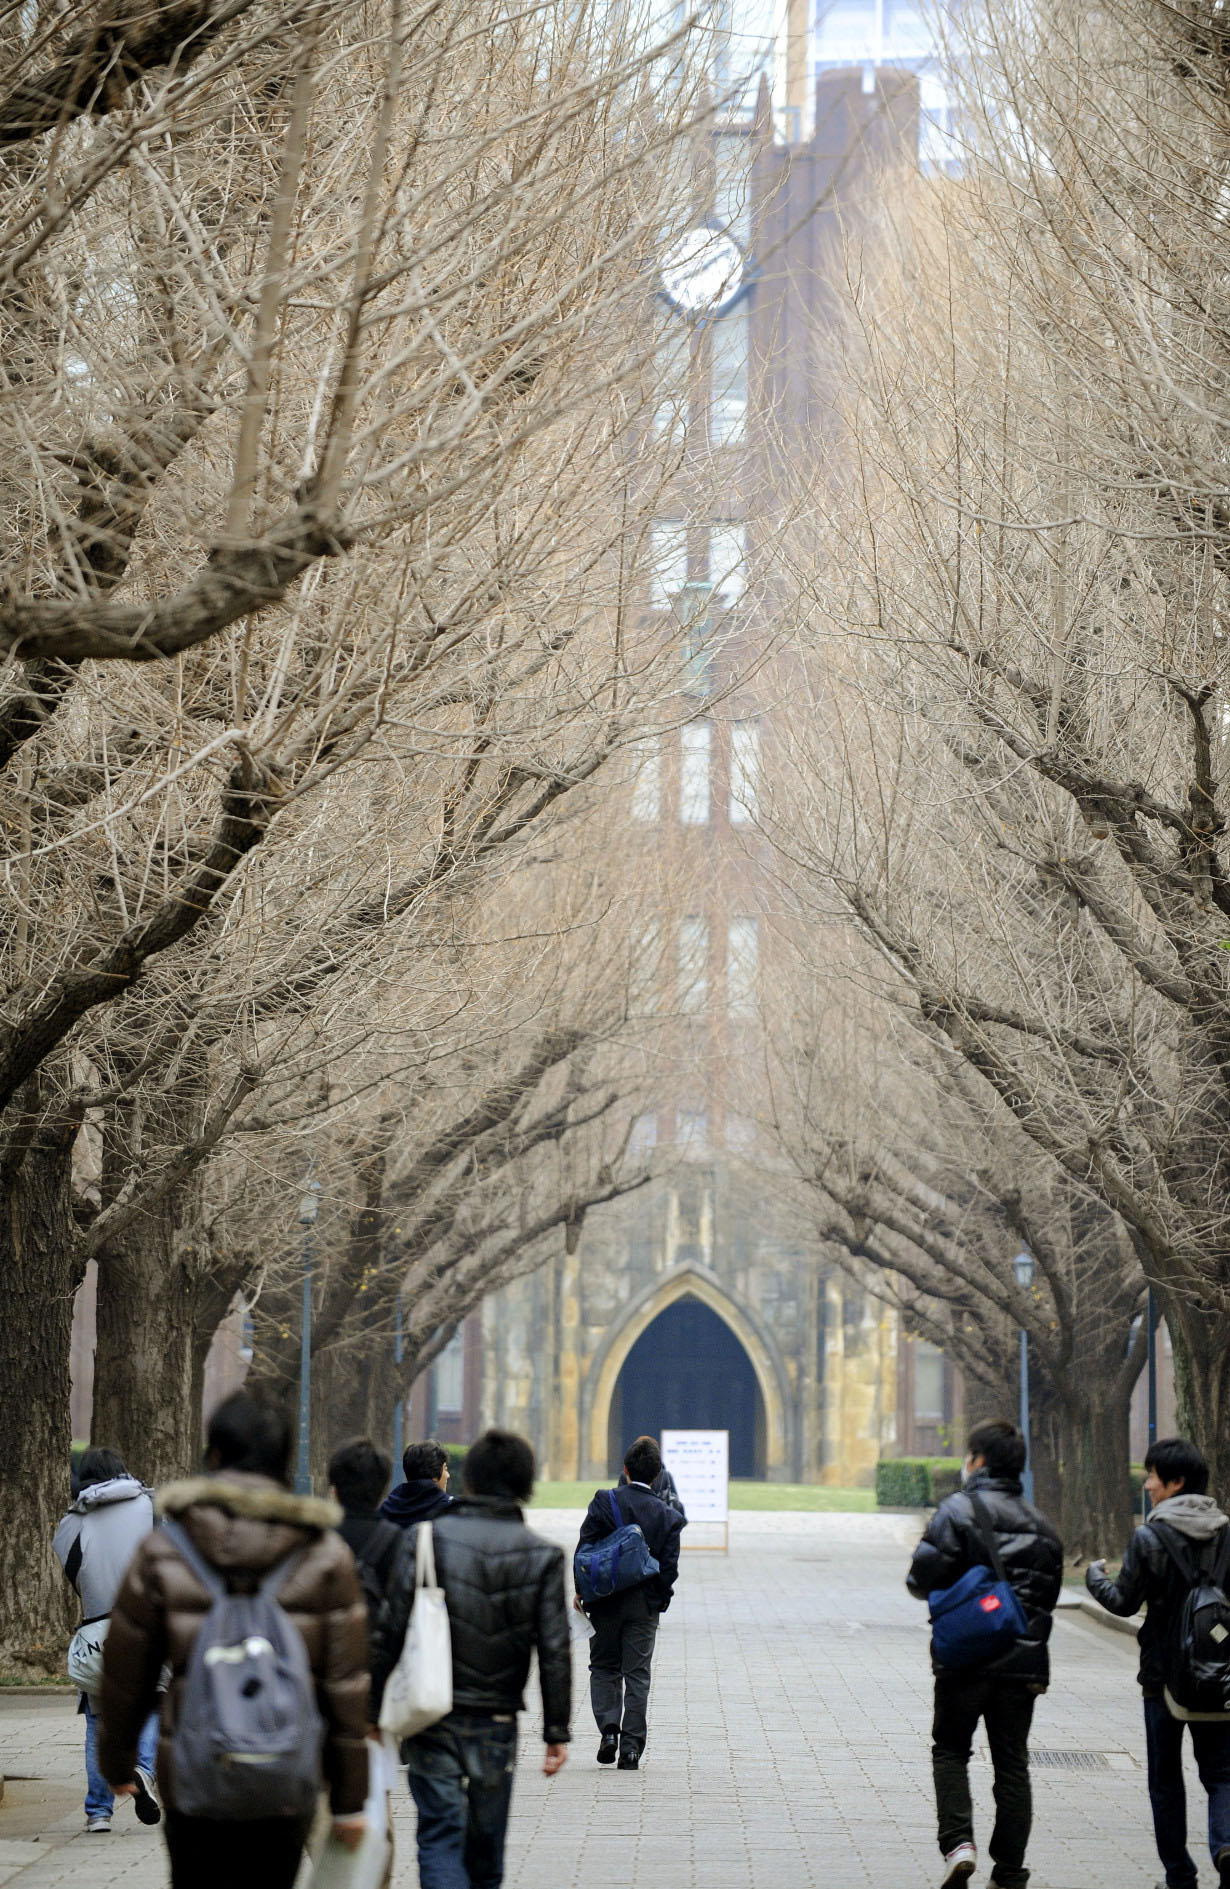 School breaks: Students head into exams at the University of Tokyo campus. The university recently announced that it will change the start of the academic year from spring to fall in order to align with other countries. | KYODO